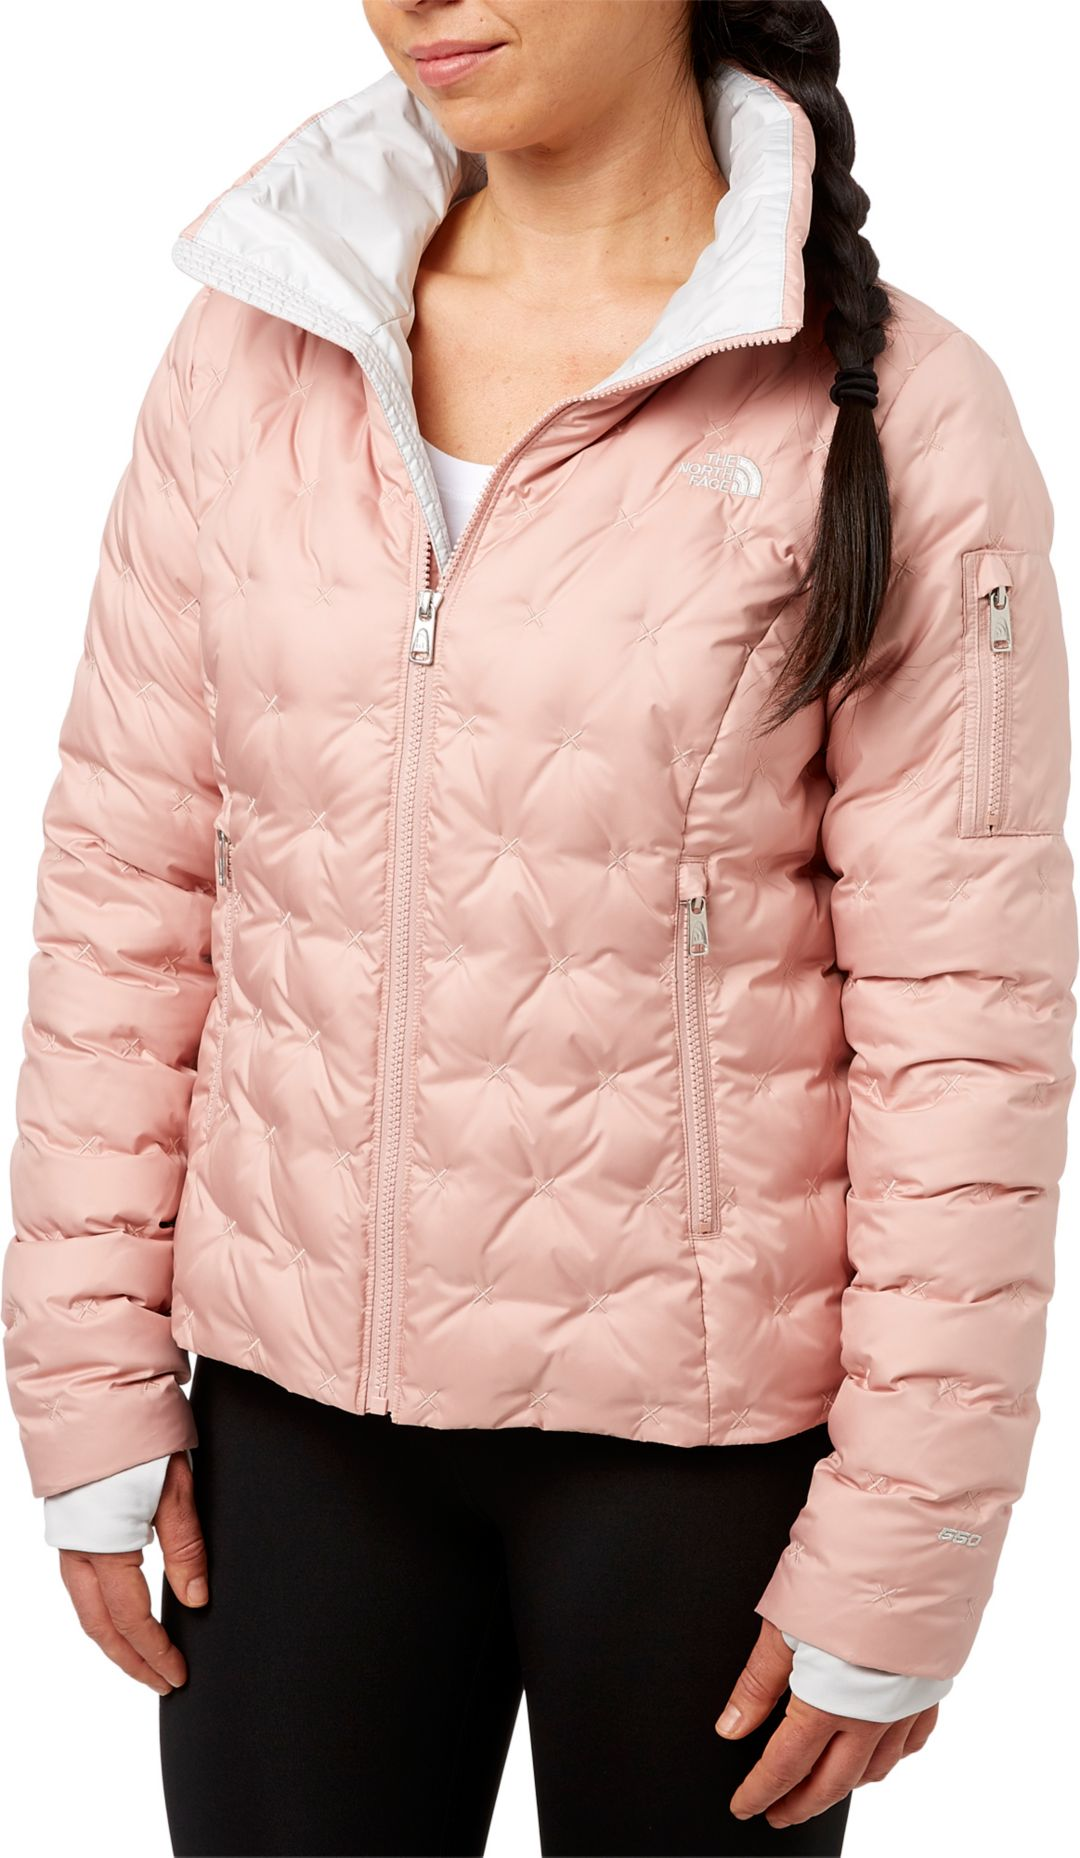 a8e338056 The North Face Women's Holladown Crop Jacket